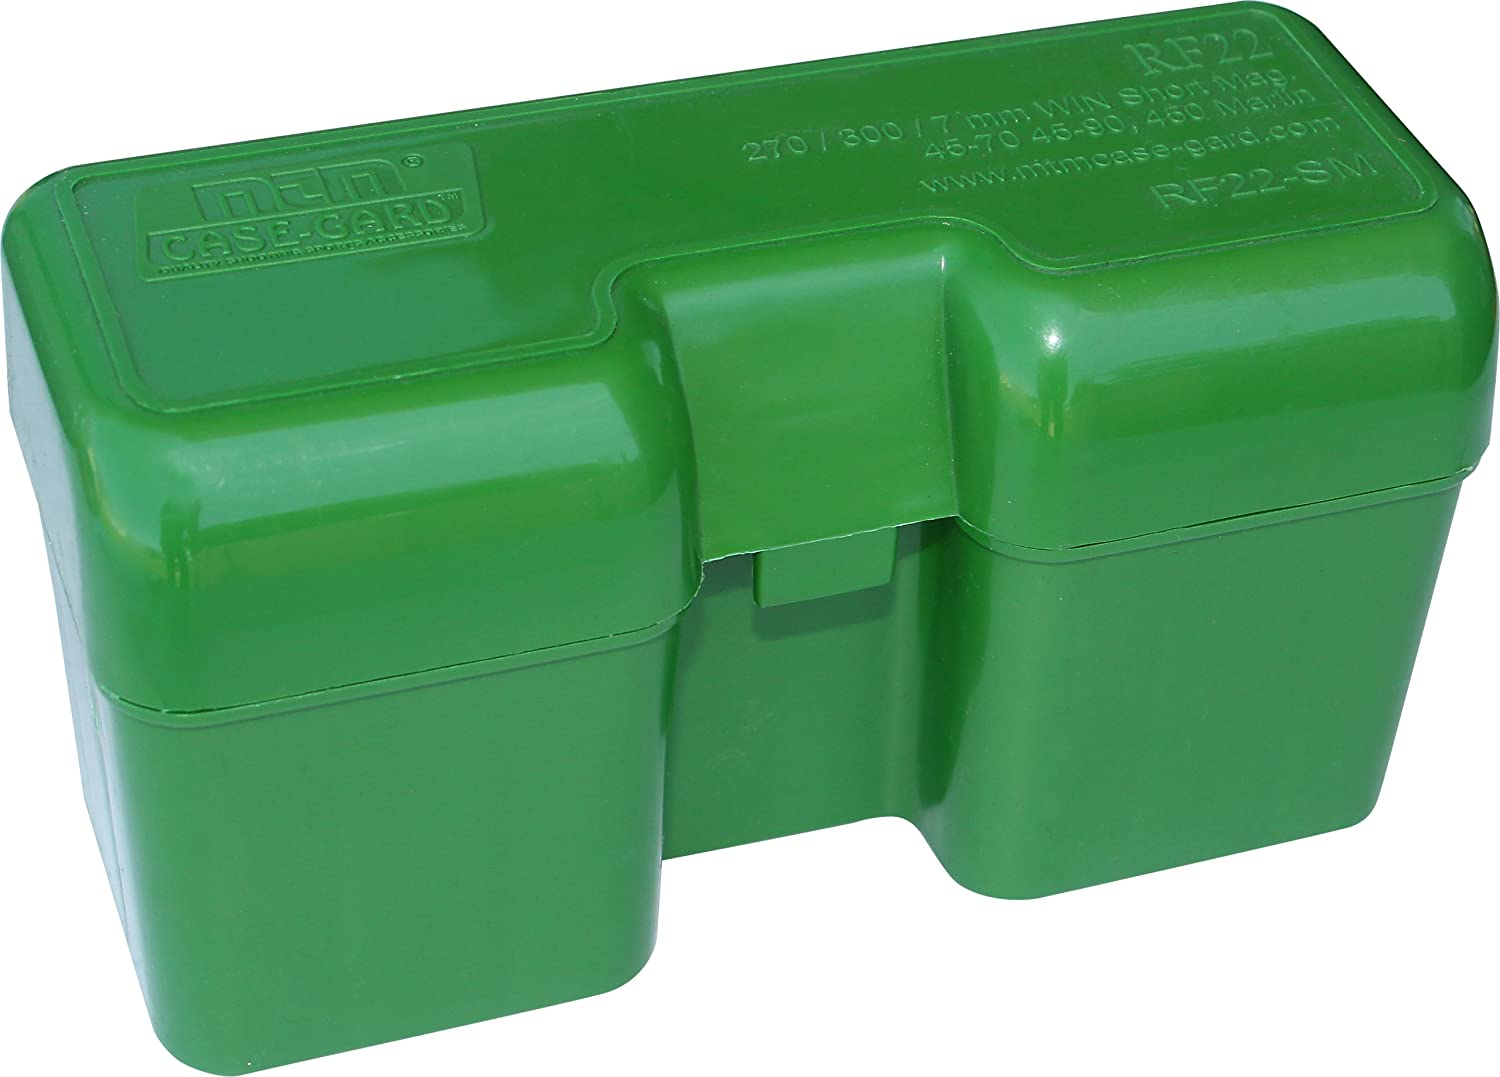 MTM 100 Round Deluxe Handled Magnum Flip-Top Rifle Ammo Case R-100-MAG-10 NEW